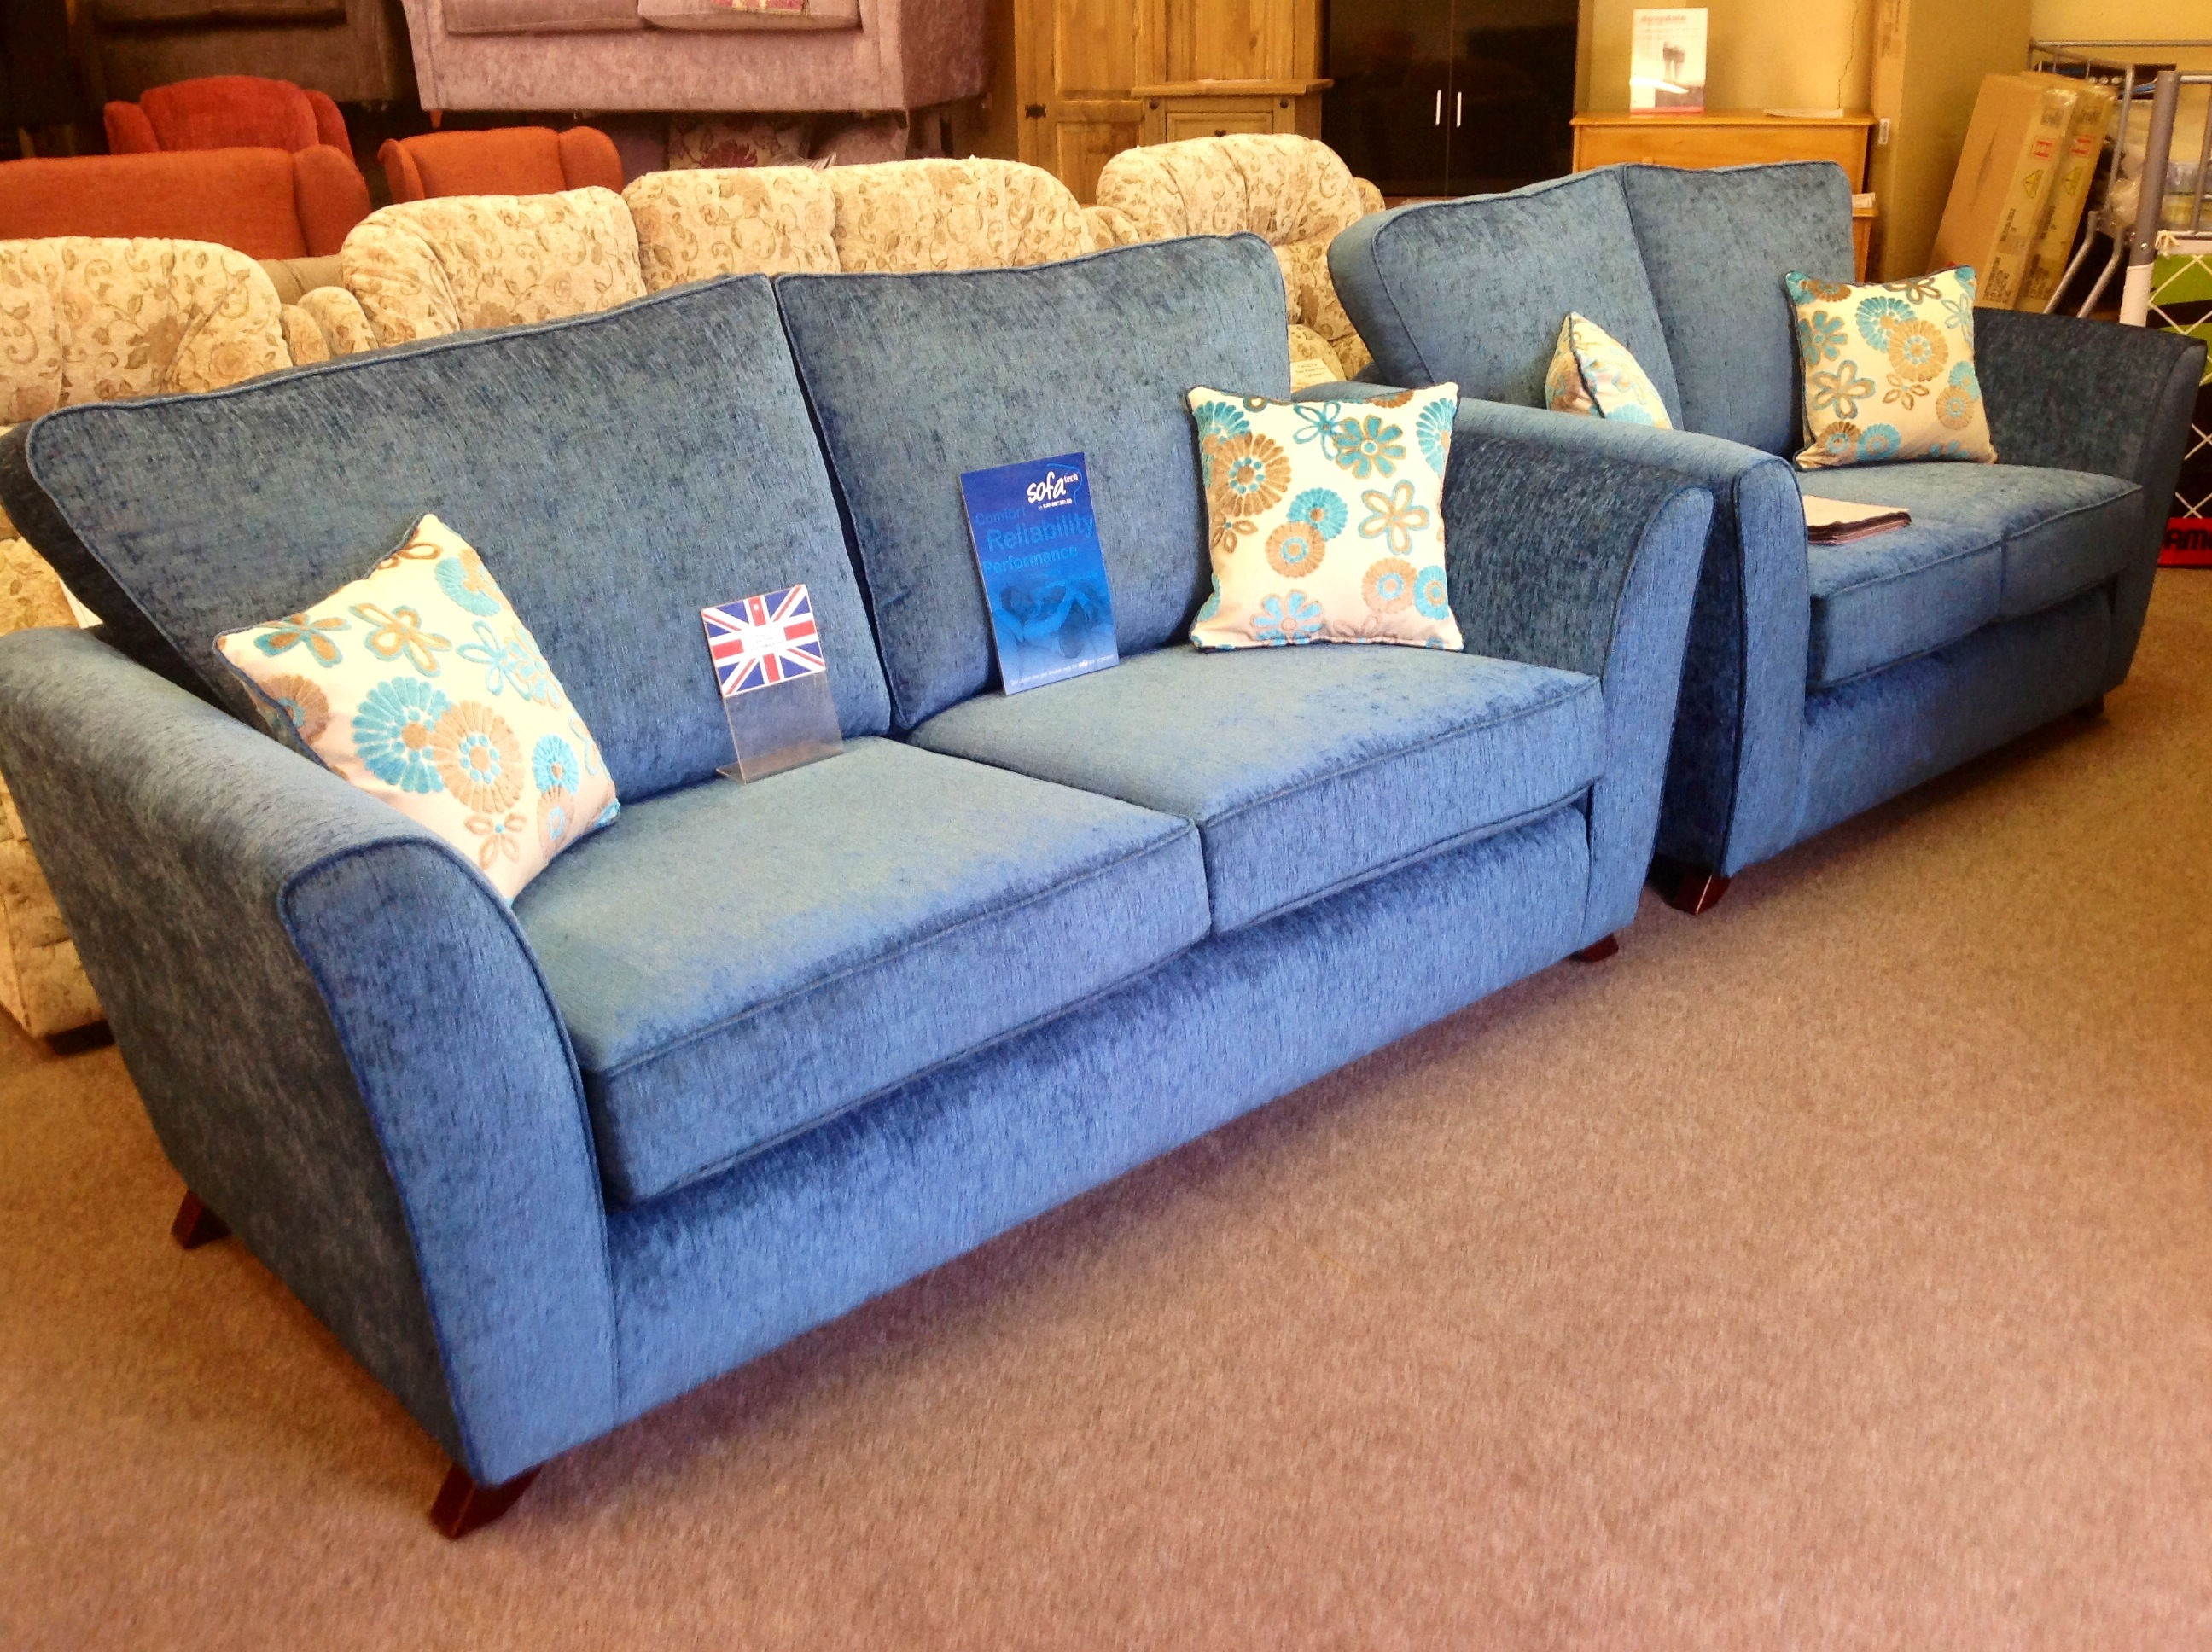 free sofa bed newbury queen beds clearance quality plus sofas and pine lancaster